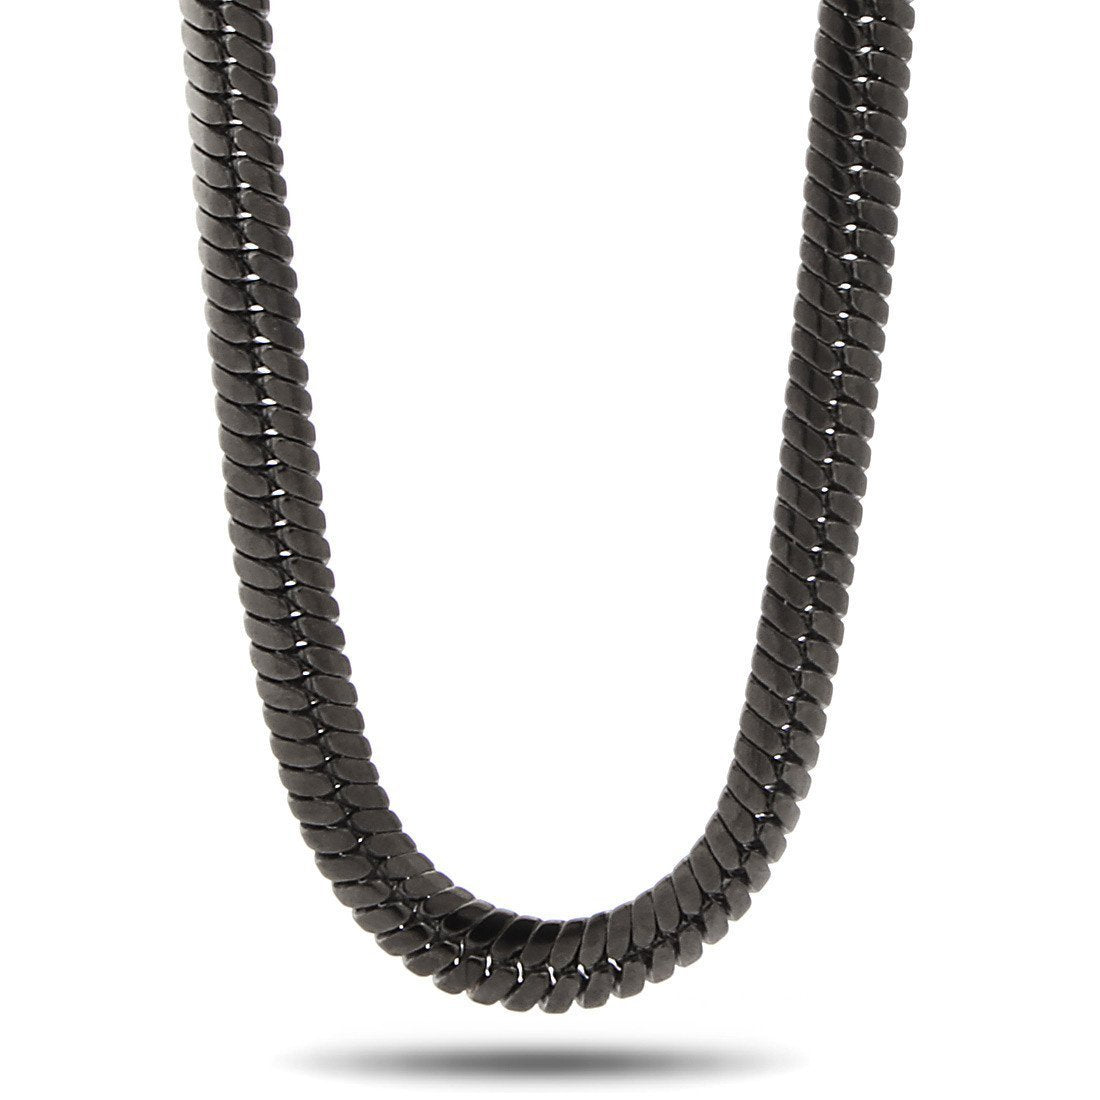 Chains - 10mm Thick Black Rhodium Herringbone Chain -   jetcube